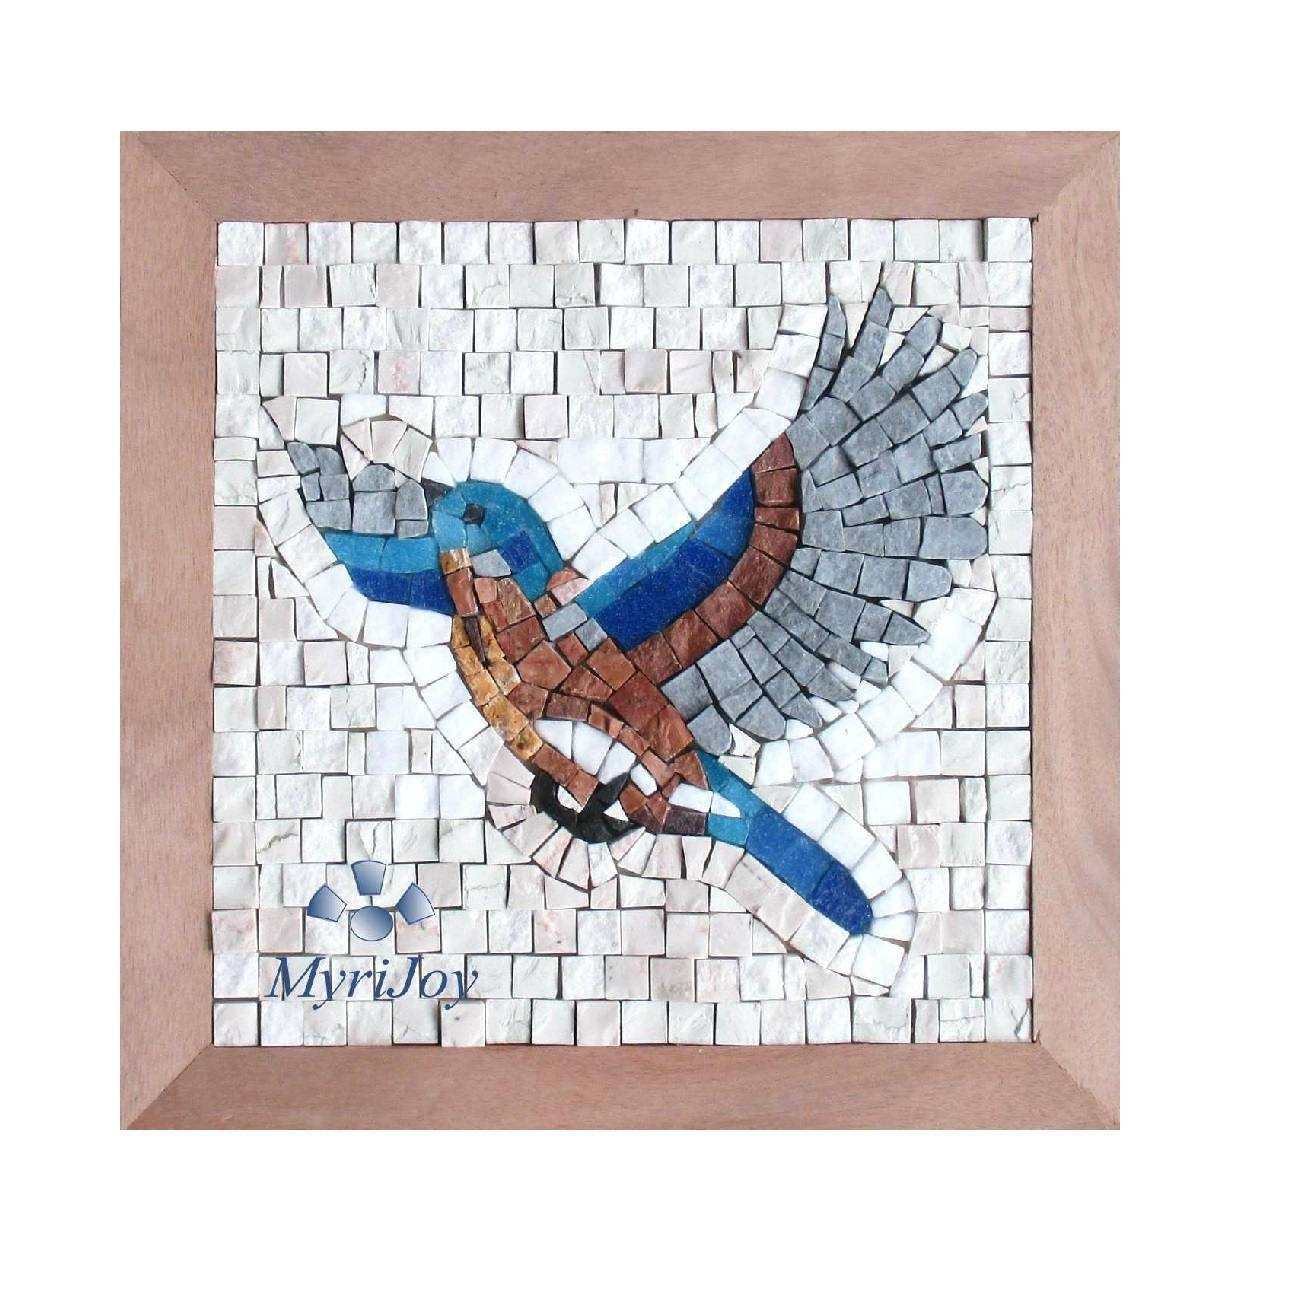 Mosaic Crafts For Adults Take Flight Mosaic Art Kit Mosaic Throughout Most Recent Mosaic Wall Art Kits (View 17 of 20)